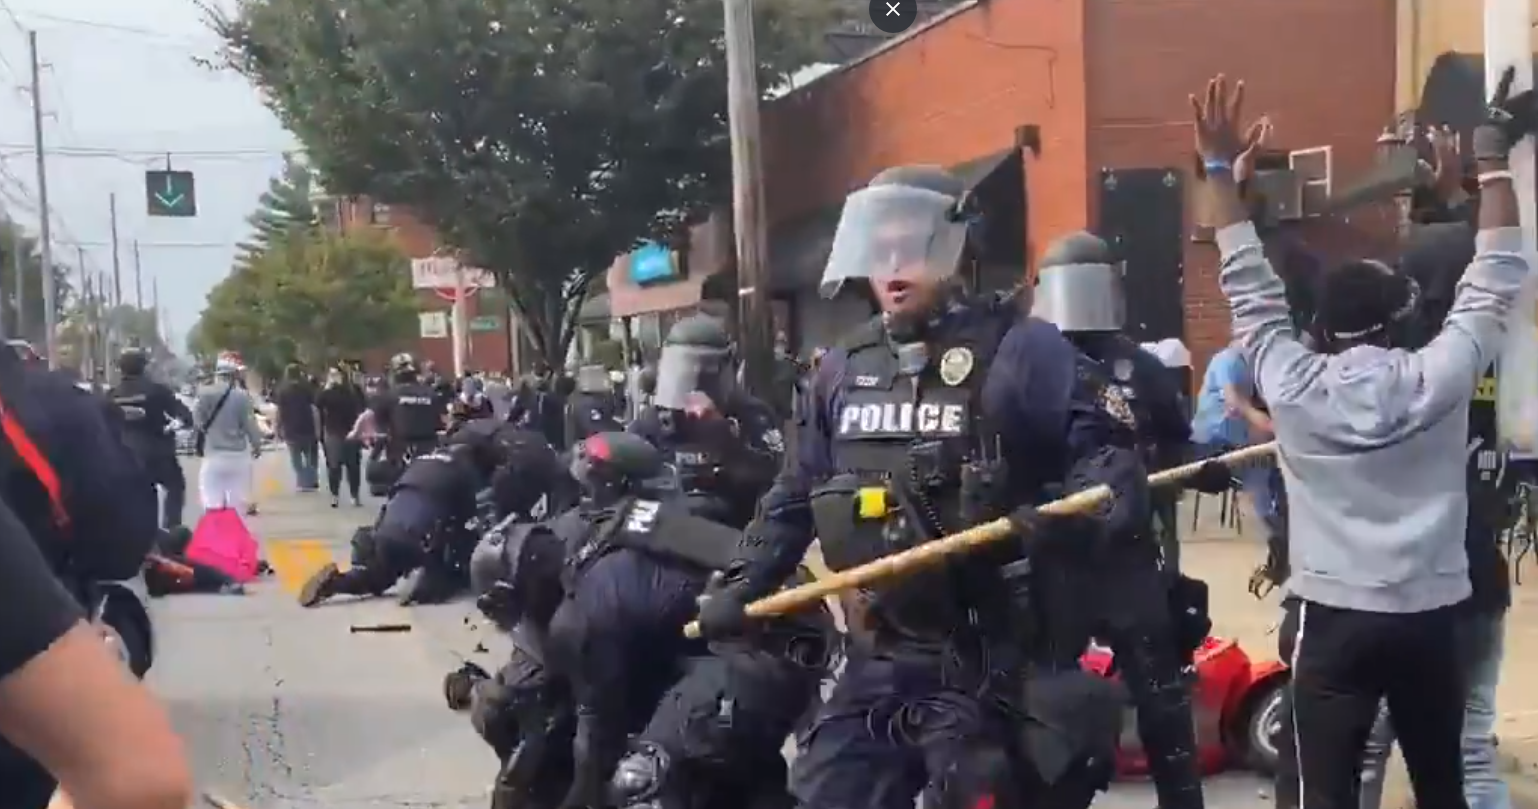 BREAKING: Arrests made in Louisville as rioters wreak havoc, clash with police after Breonna Taylor verdict